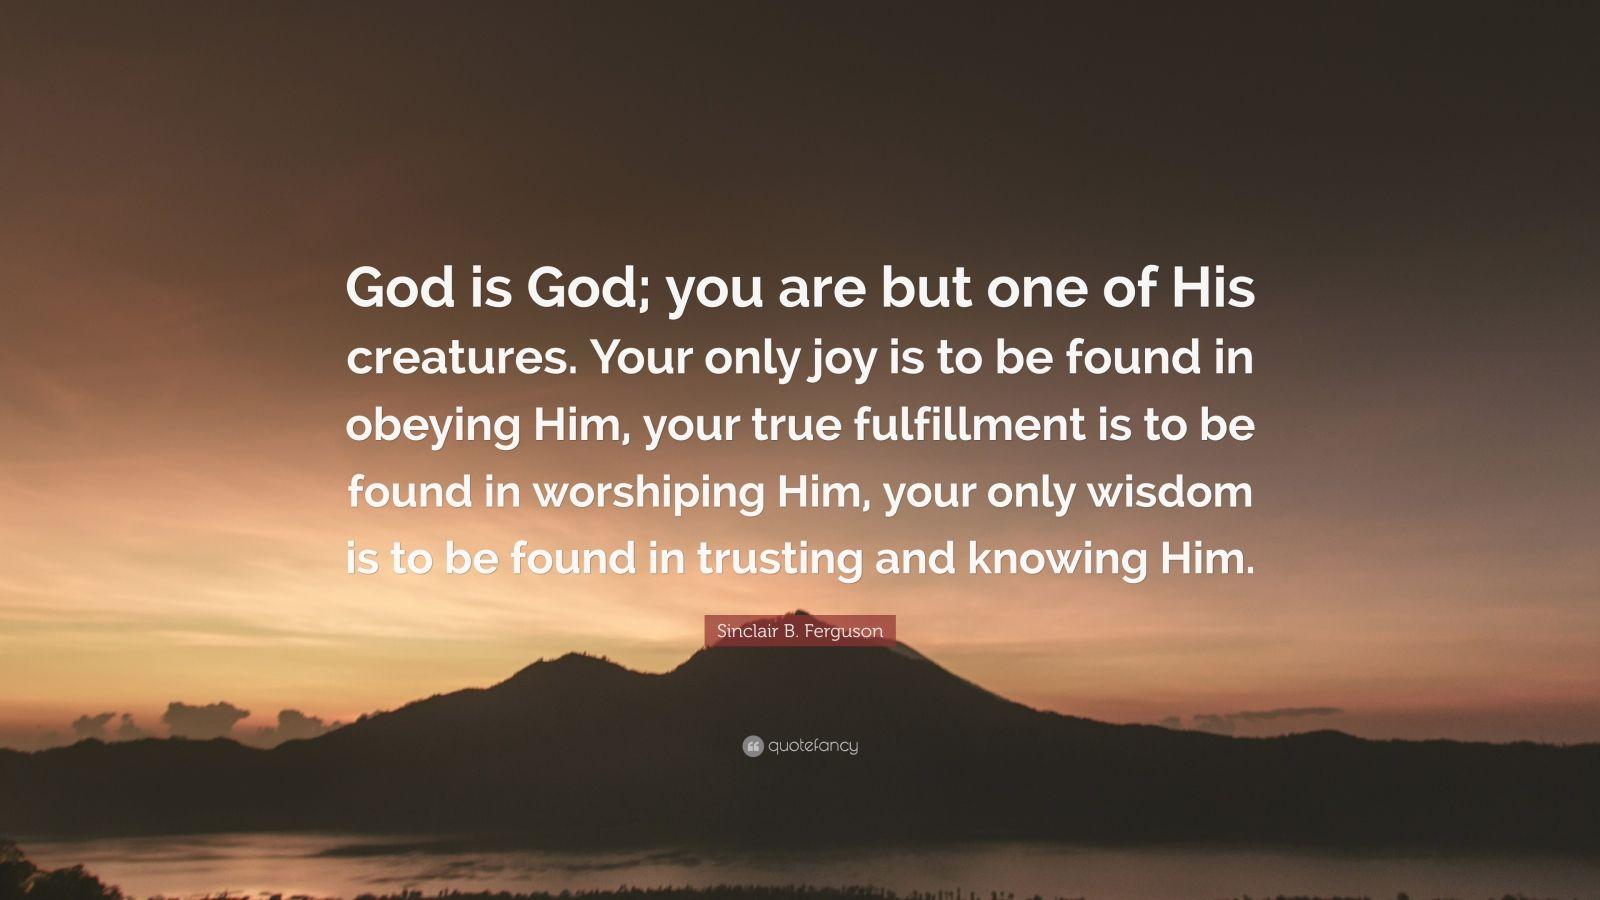 "Sinclair B. Ferguson Quote: ""God is God; you are but one of His creatures. Your only joy is to be found in obeying Him, your true fulfillment is to be found in worshiping Him, your only wisdom is to be found in trusting and knowing Him."""